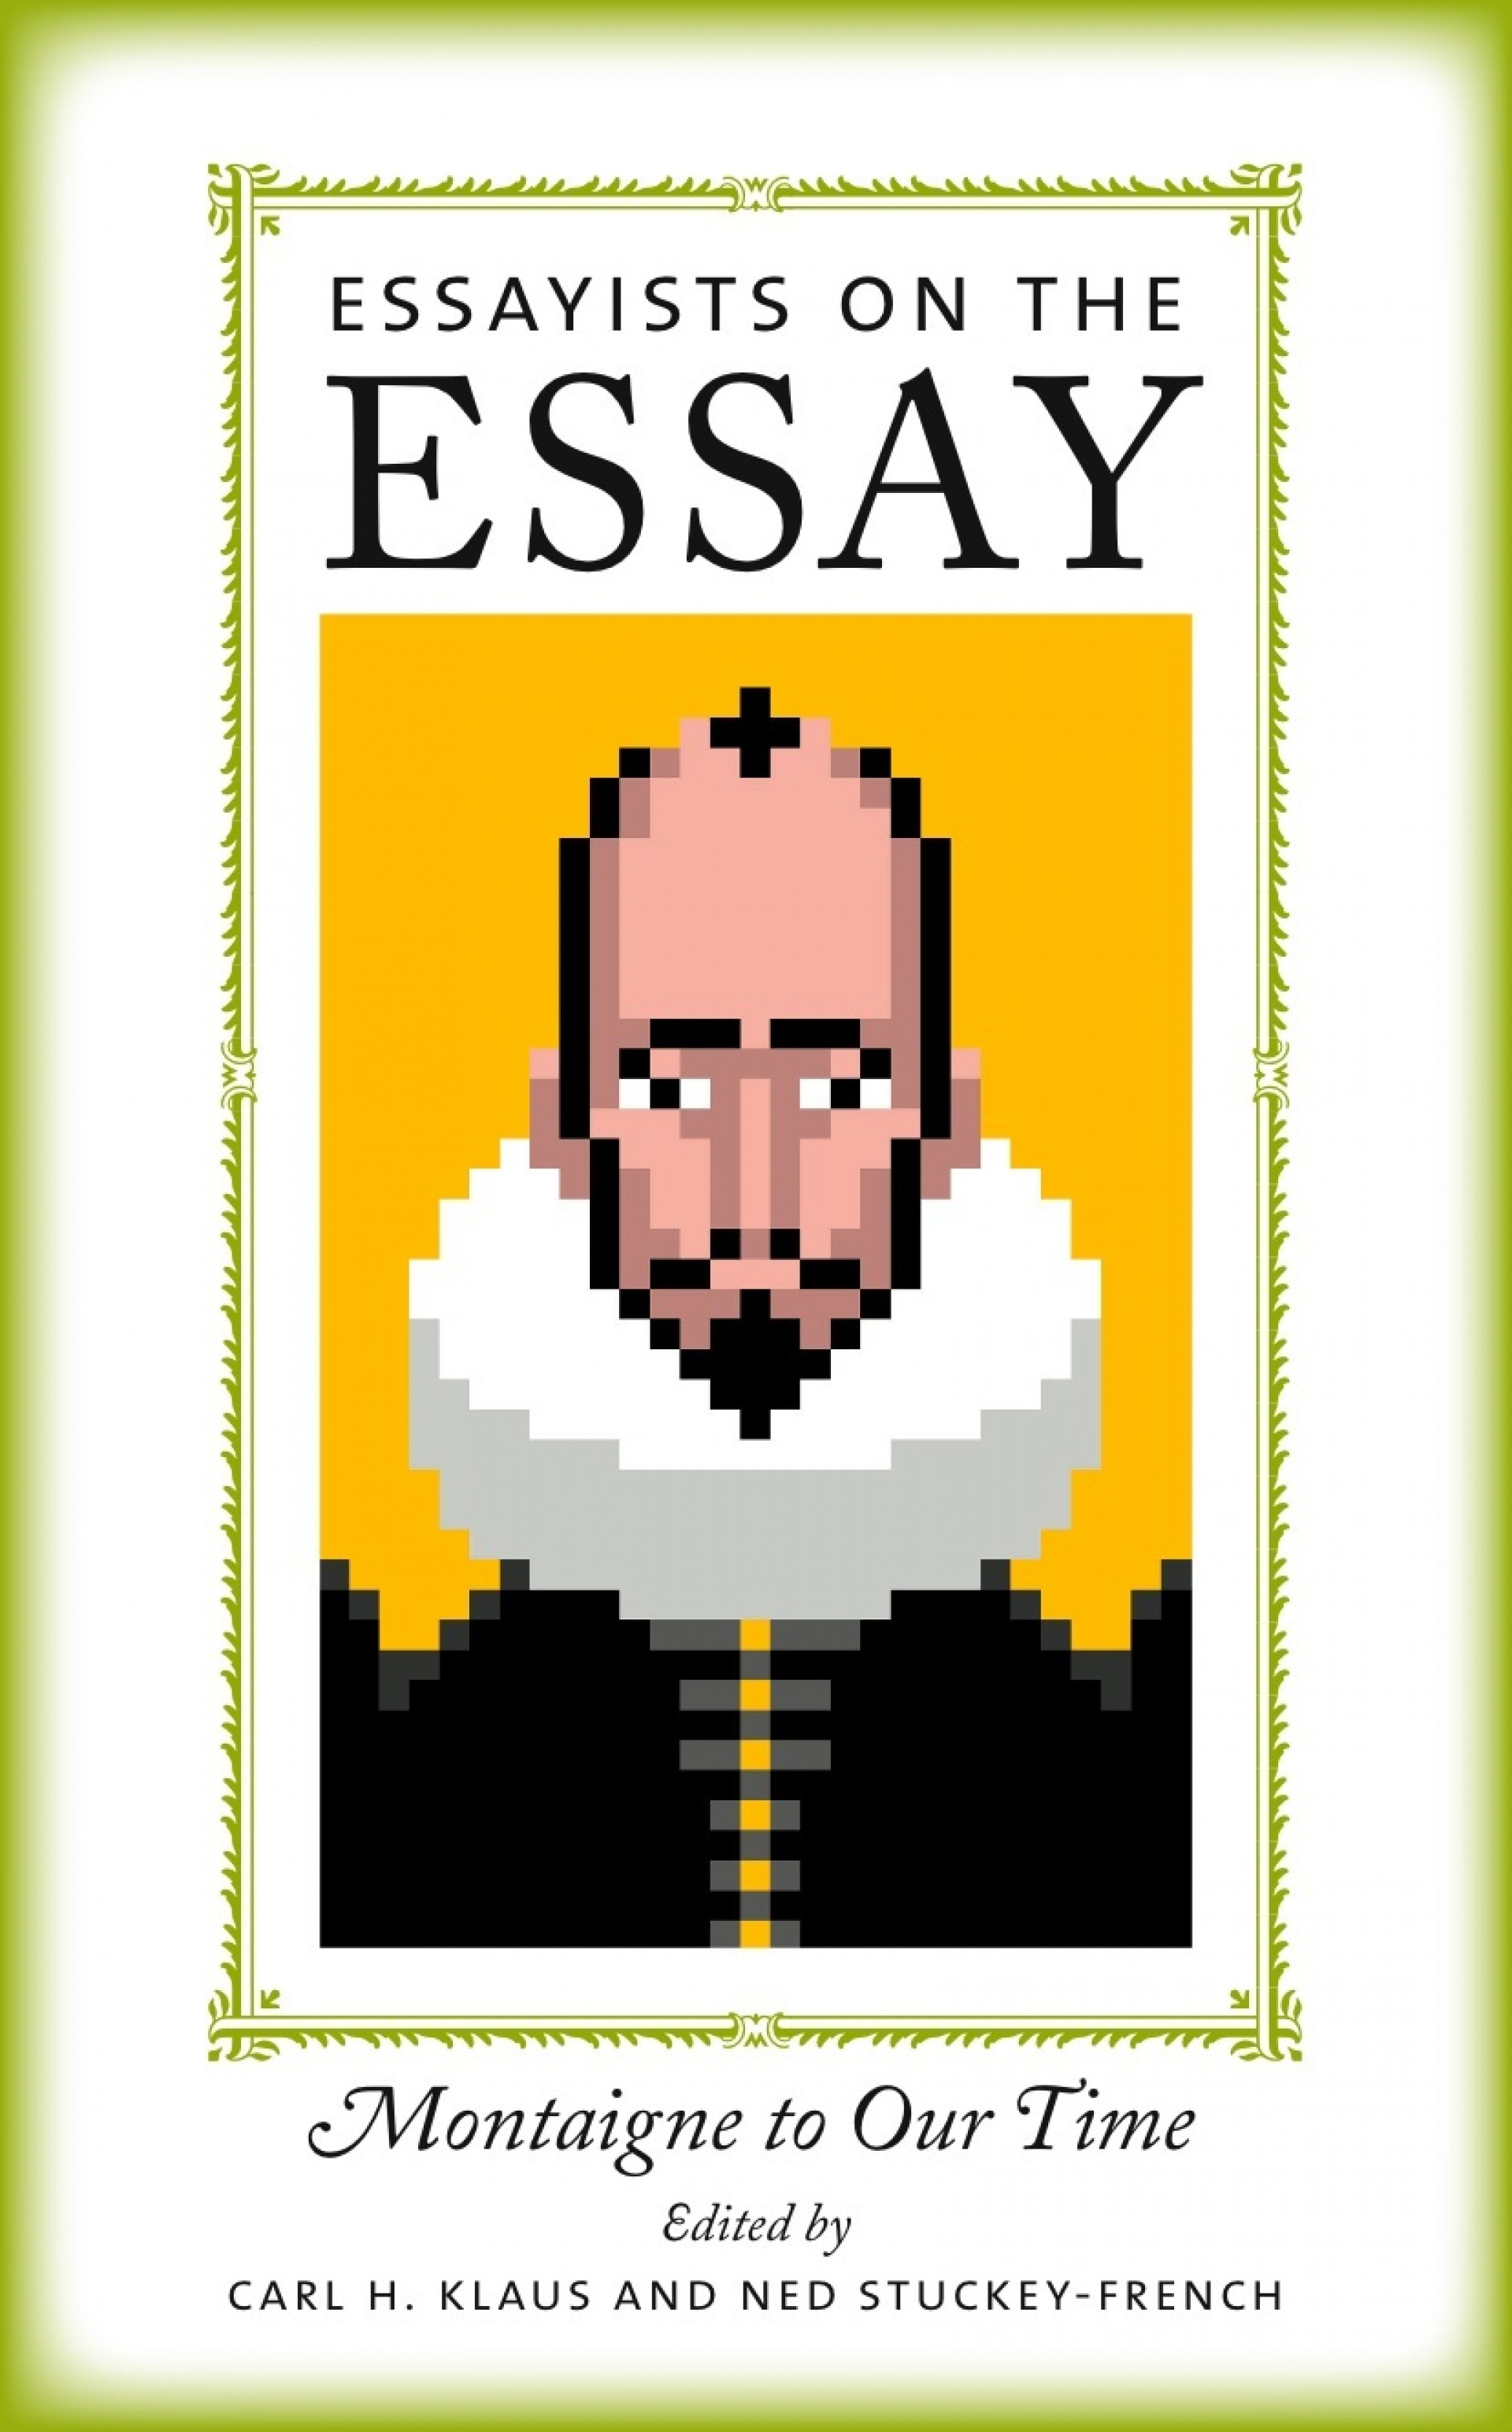 024 Essay Example It Gets Worse Collection Of Essays Essayists On The Impressive A Epub Pdf 1920